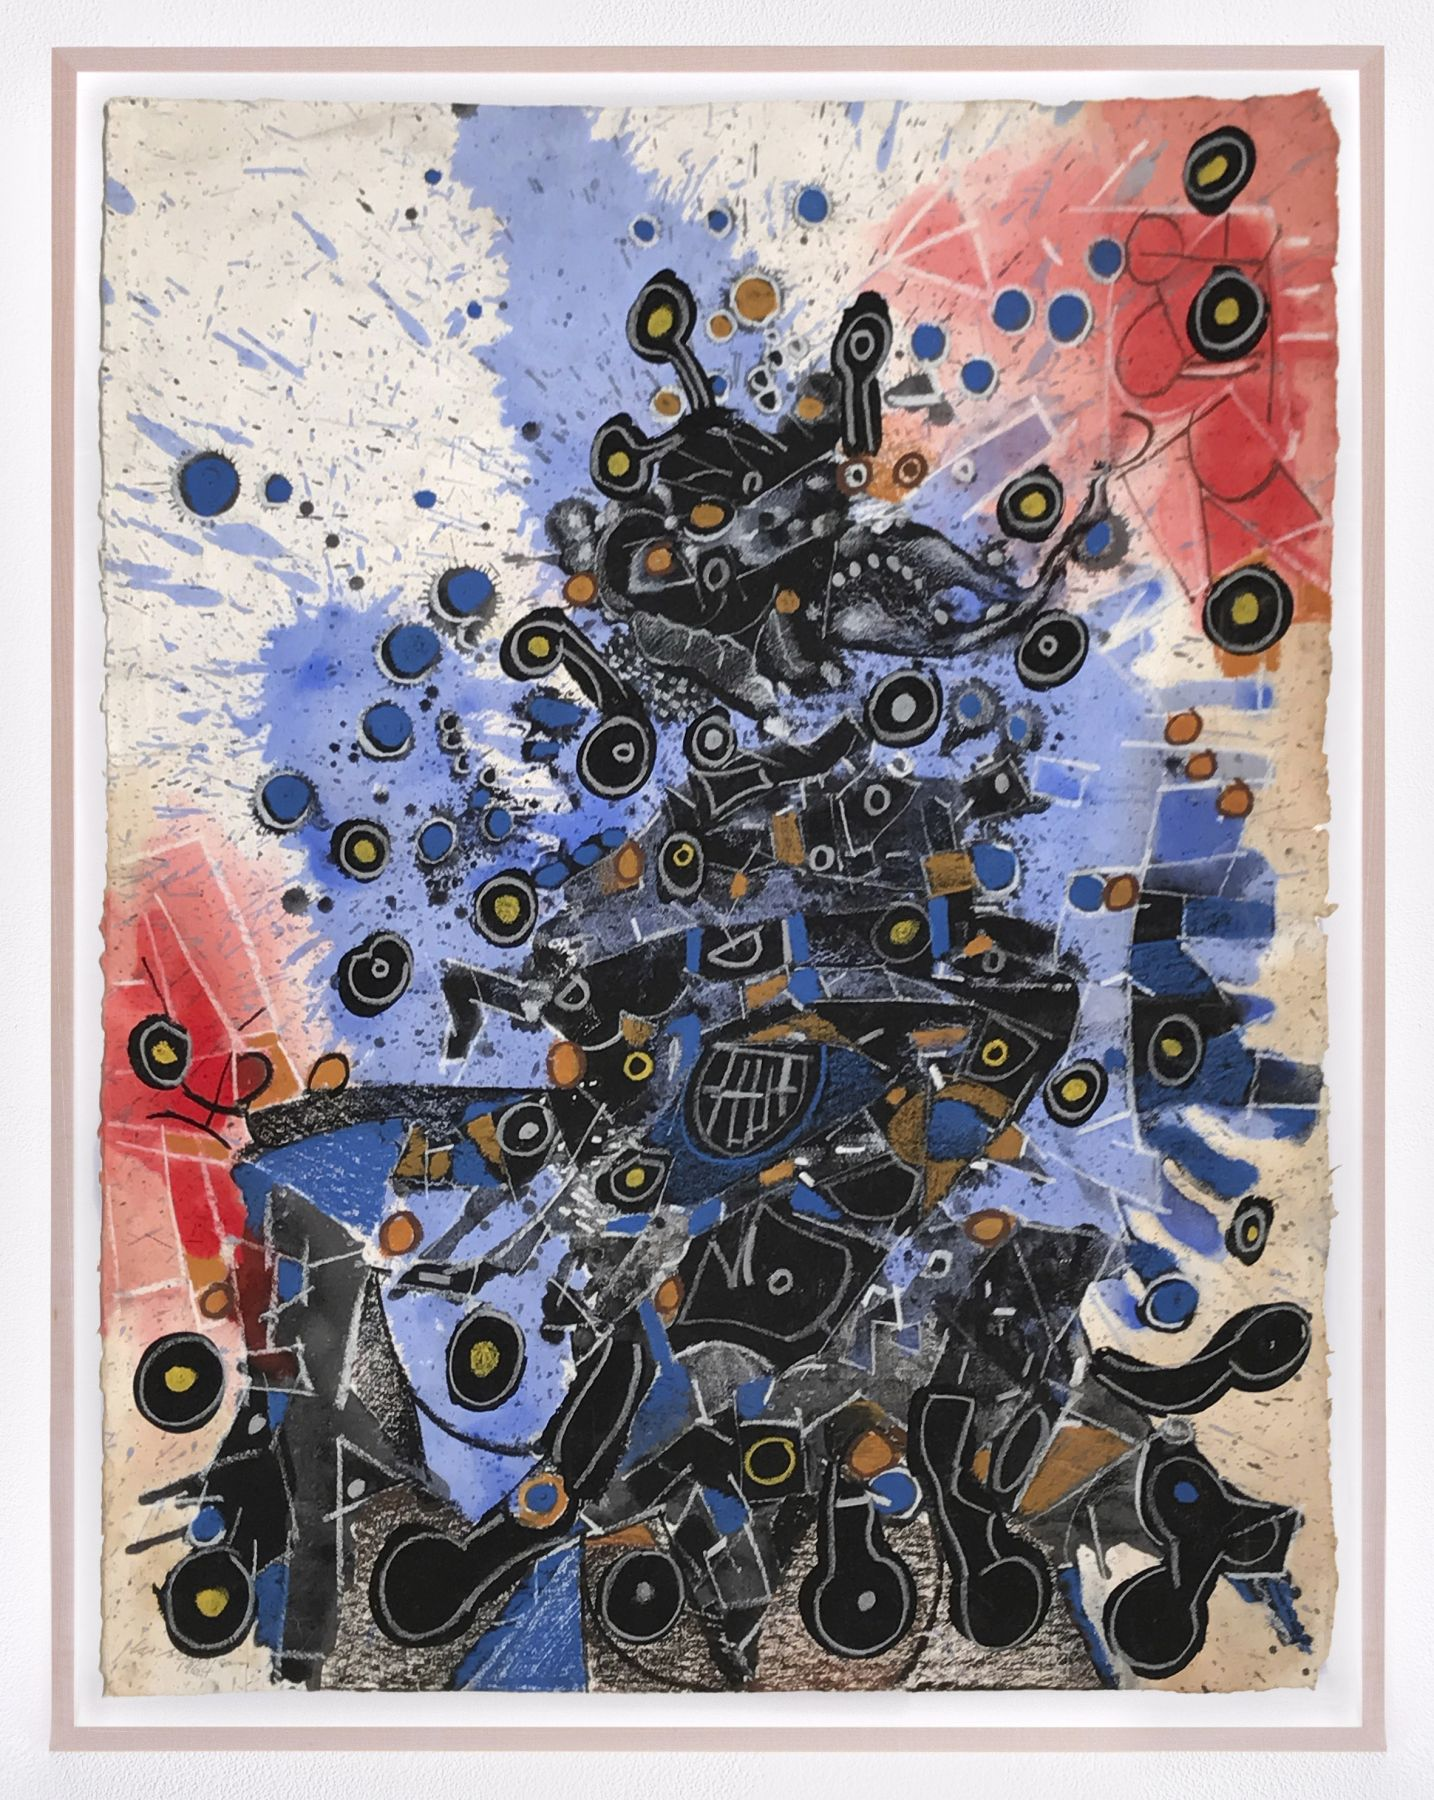 LEE MULLICANUntitled1966Oil, acrylic, and pastel on paper24 1/4 x 19 3/4 in.61.6 x 50.2 cmJCG9279